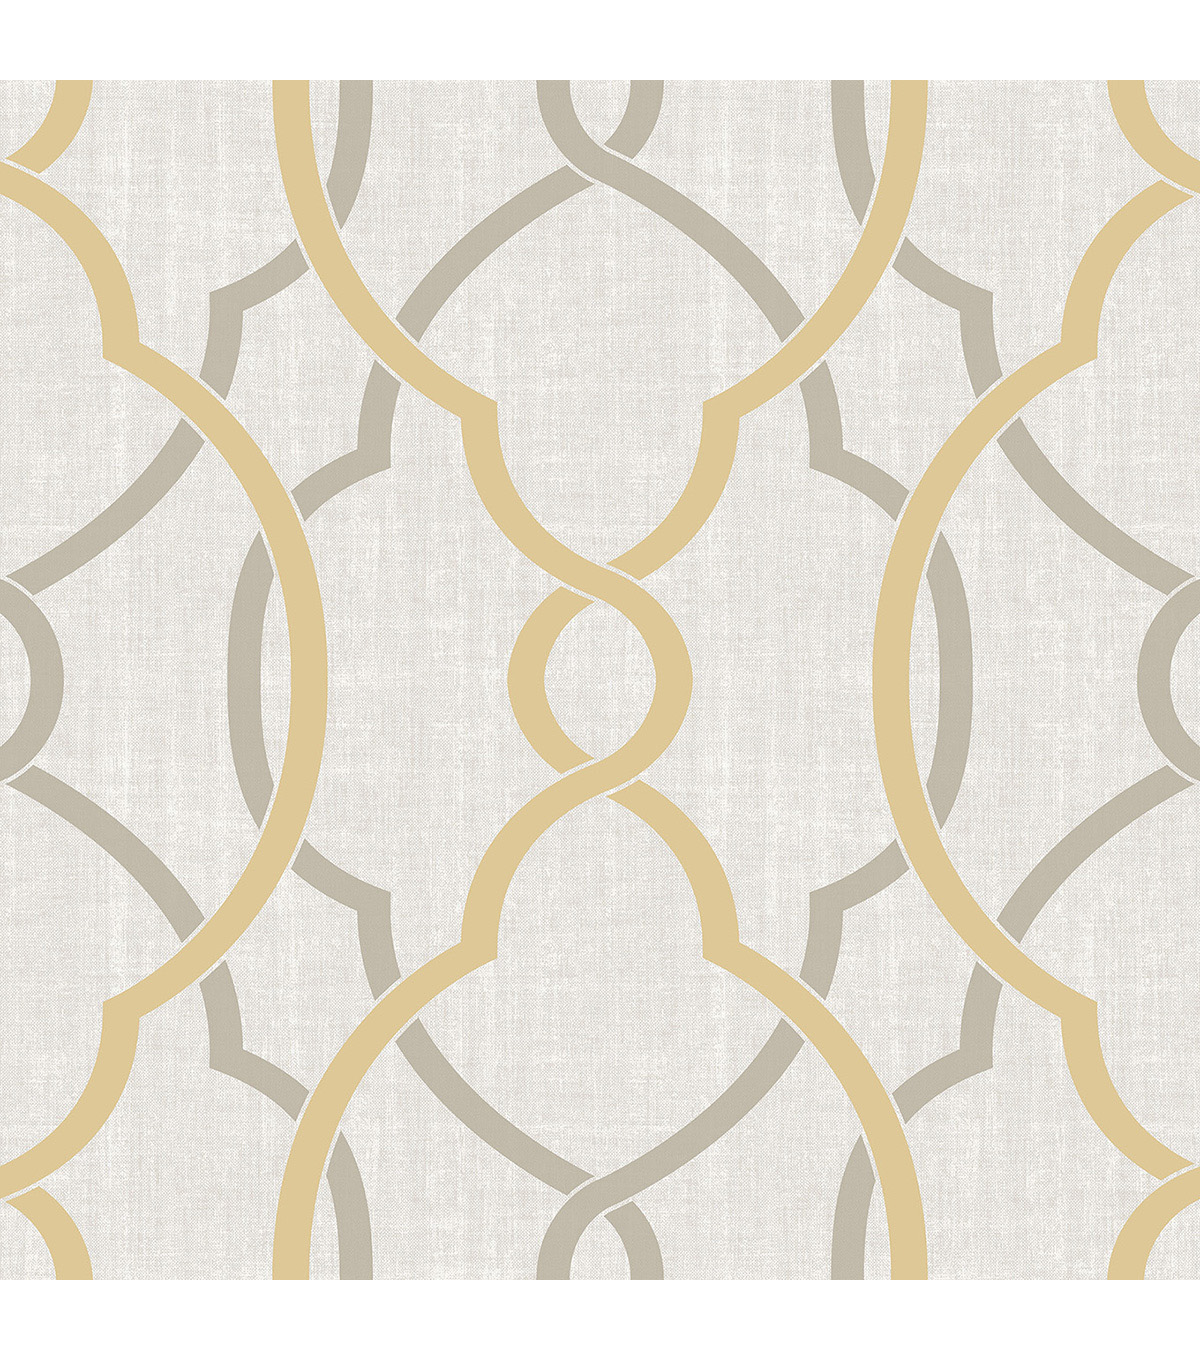 Wallpops Nuwallpaper Peel & Stick Wallpaper-Taupe & Yellow Sausalito